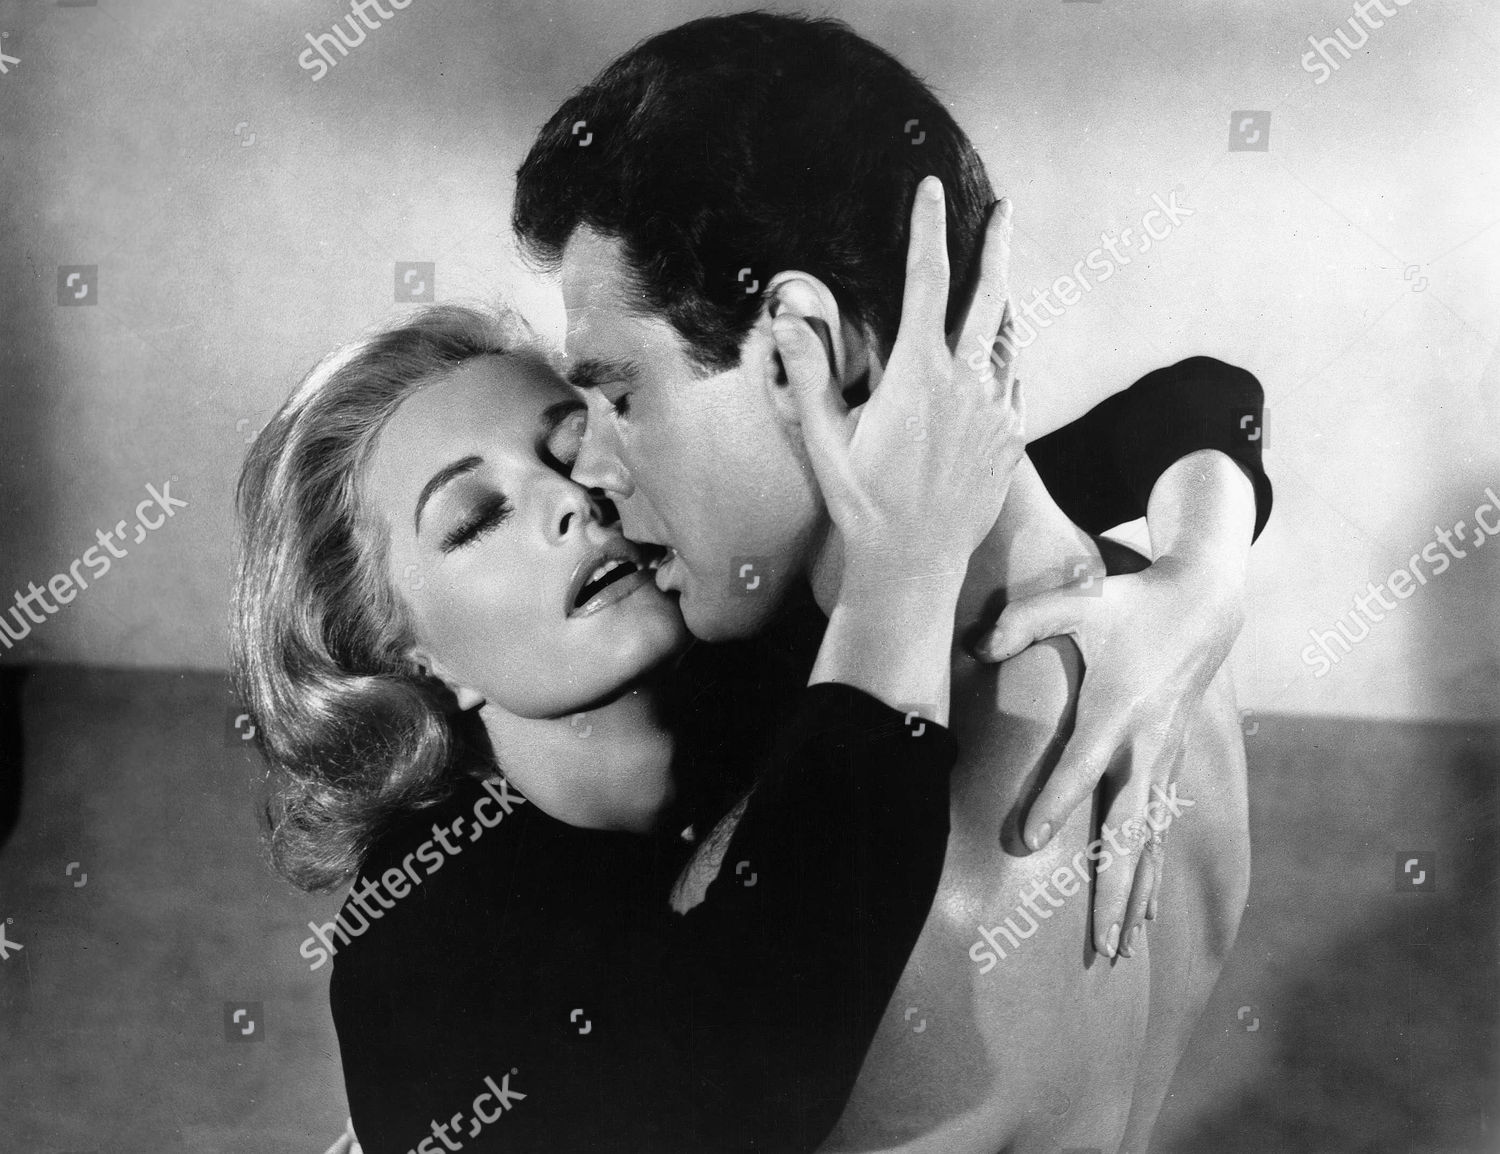 Constance Towers The Naked Kiss Original 8x10 Photo #